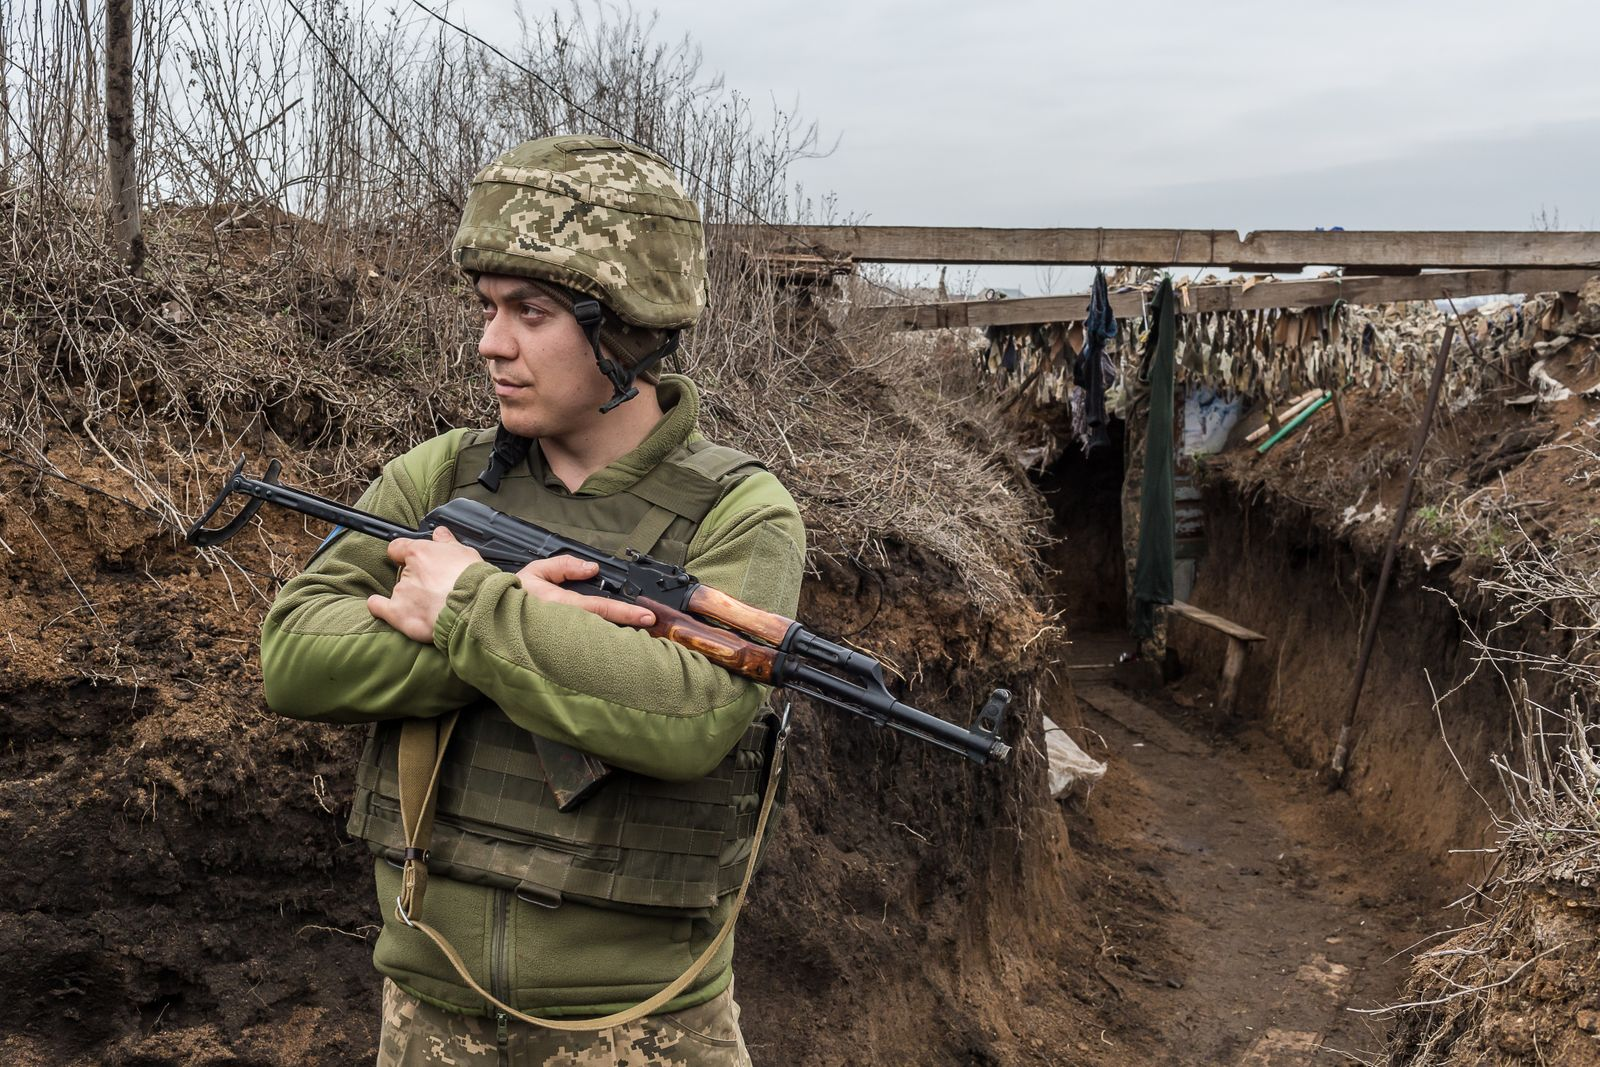 Escalation of the war in eatsern Ukraine